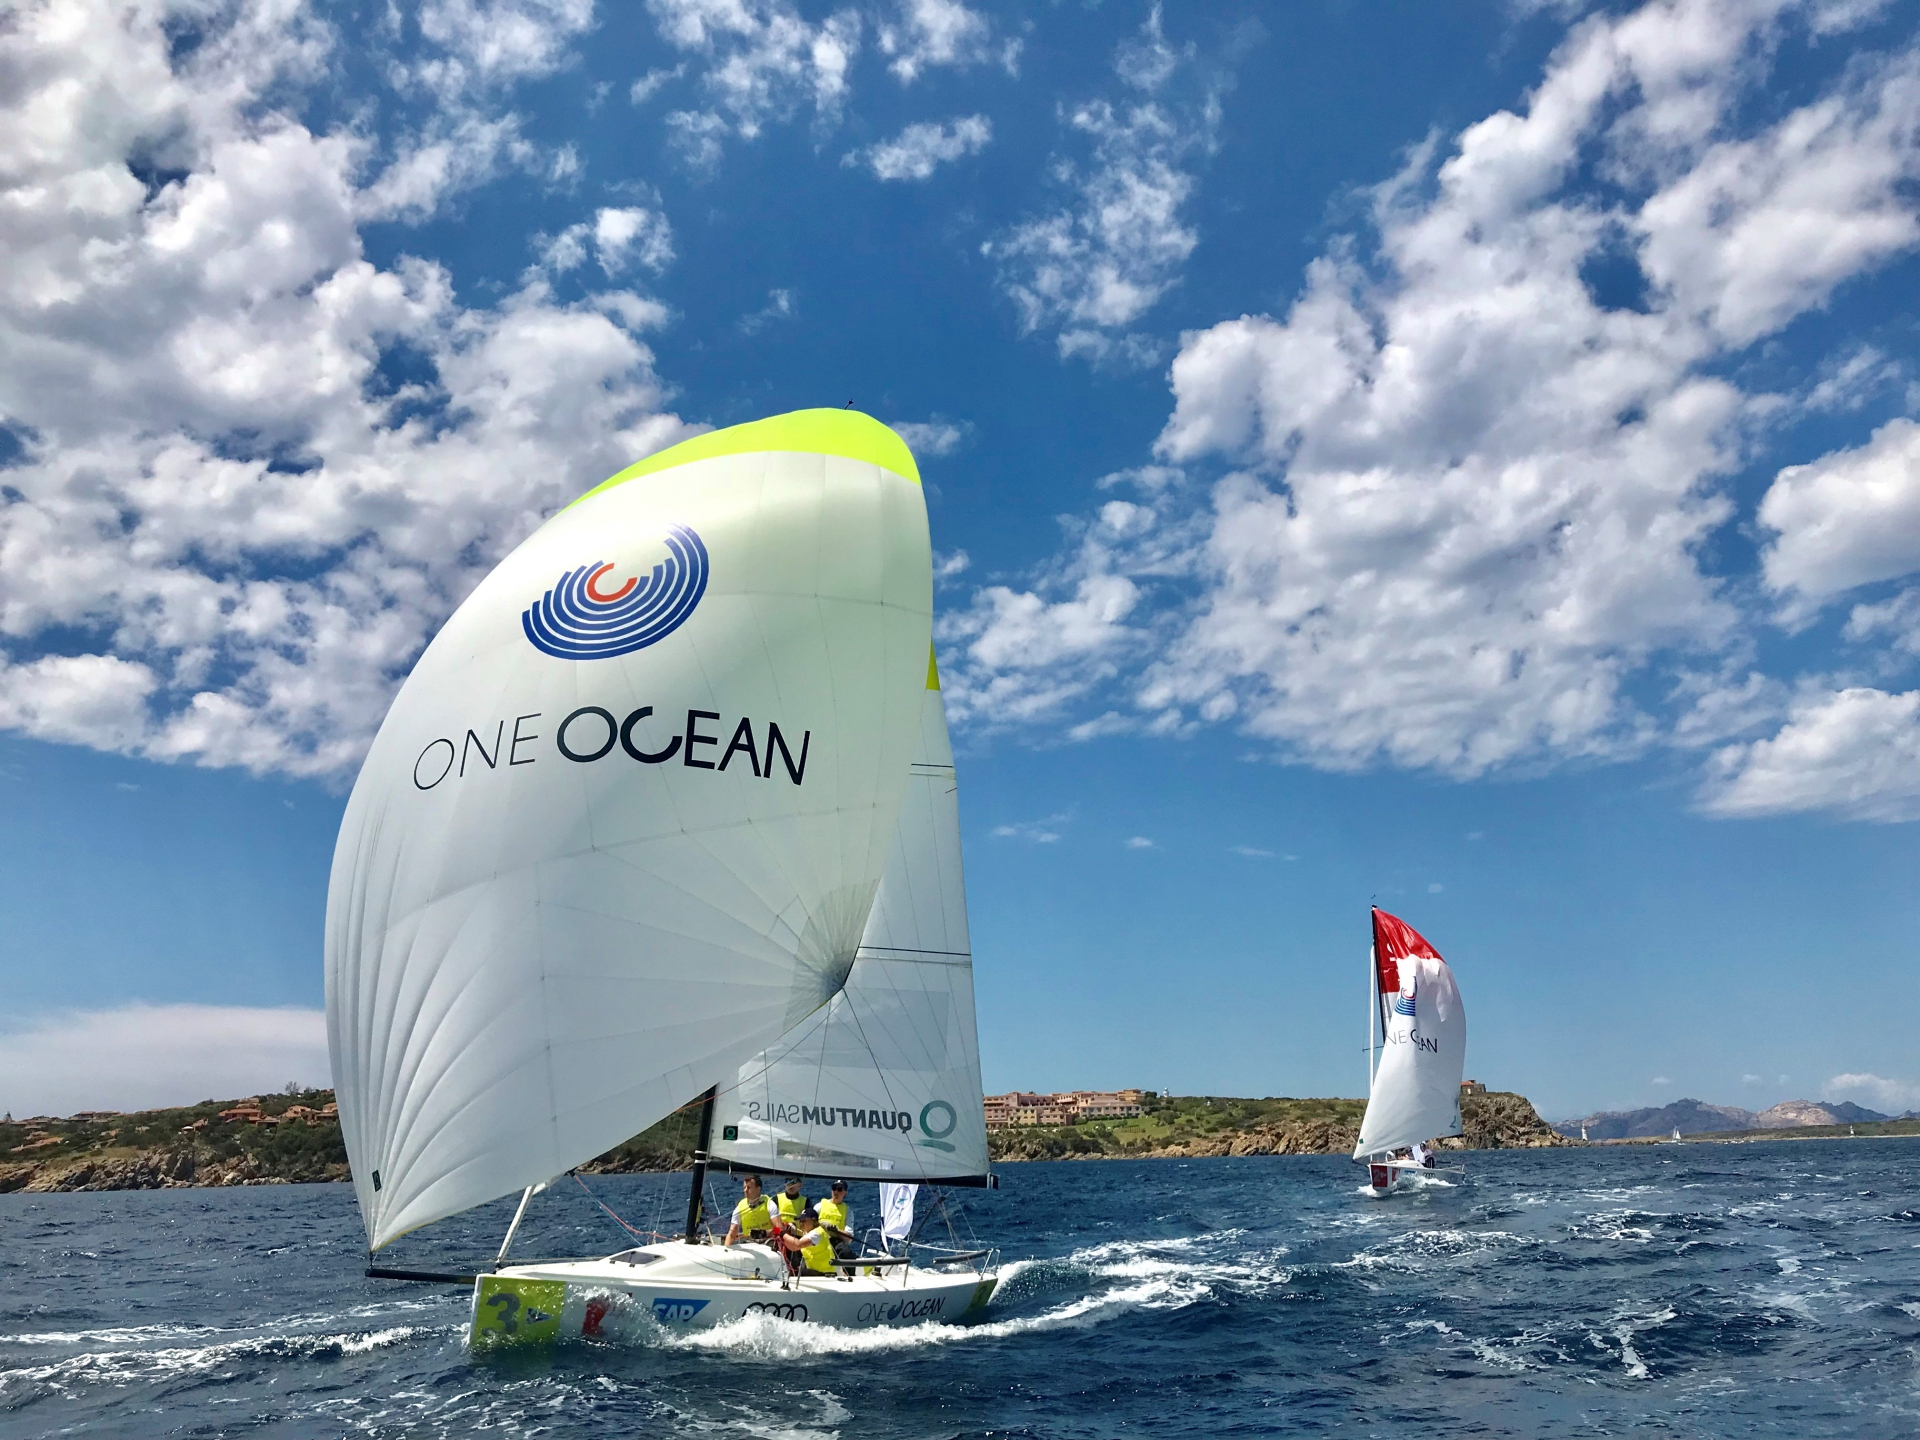 One Ocean Sailing Champions League – Images Day 1 online - NEWS - Yacht Club Costa Smeralda